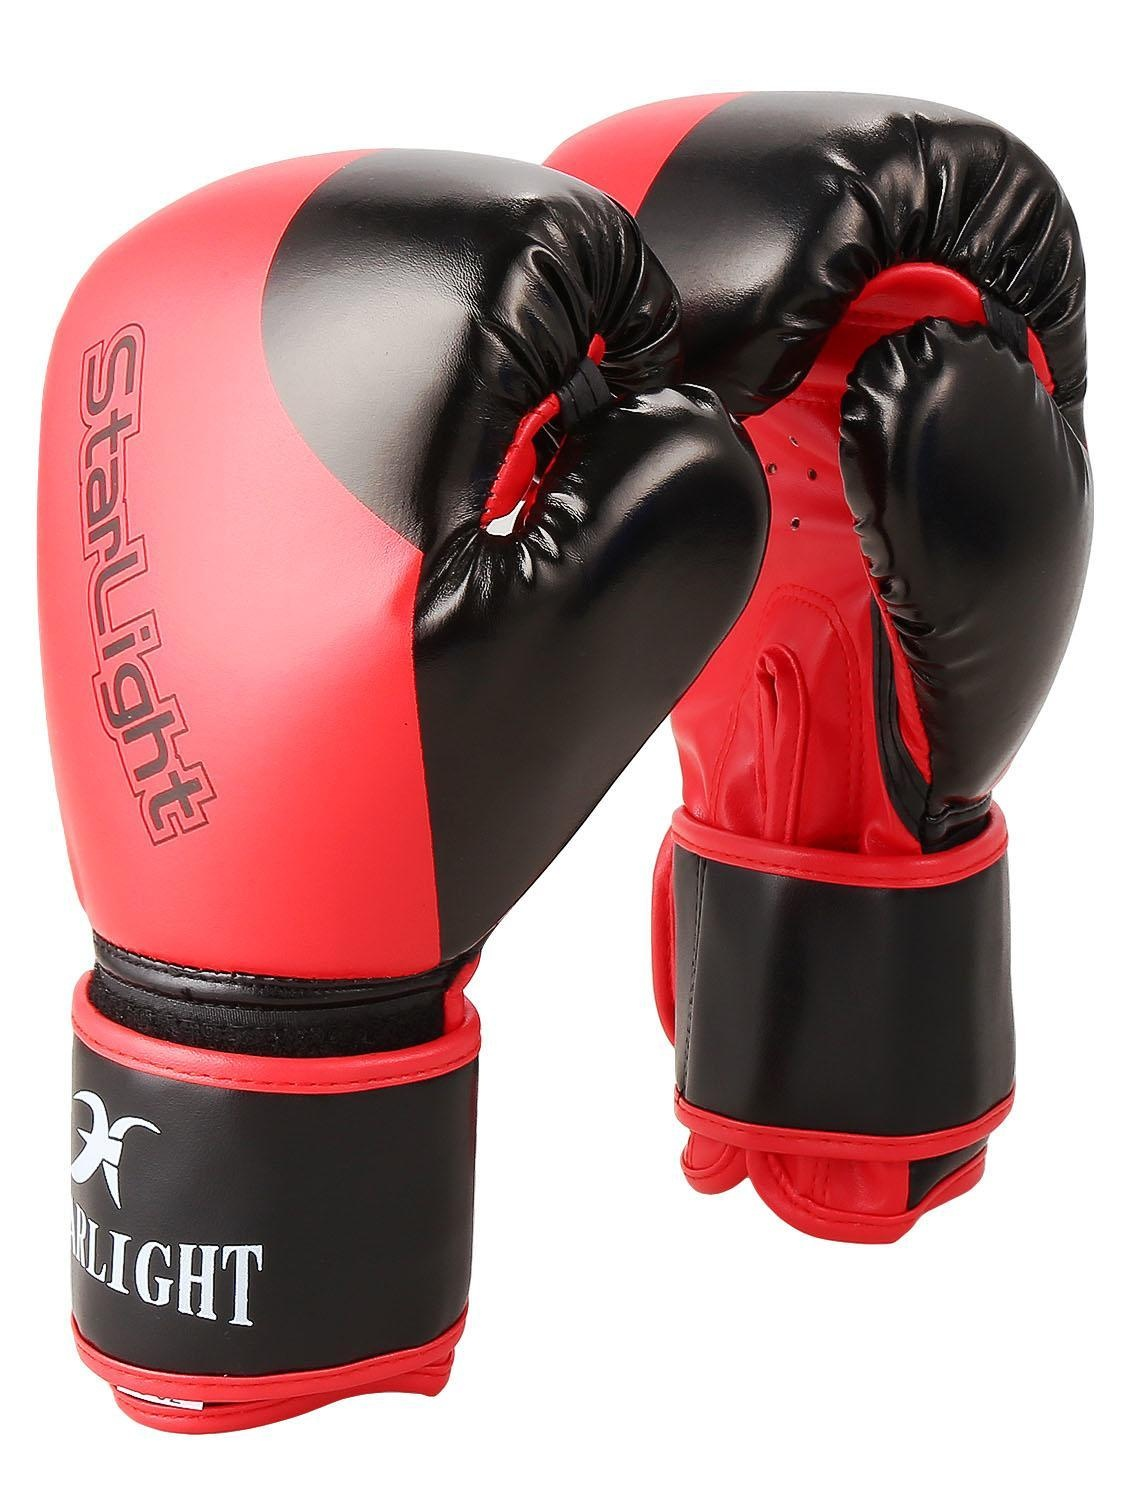 Men&Women Boxing Gloves Professional Competition Fighting Training Boxing Gloves 3 Colors Available FSBR by